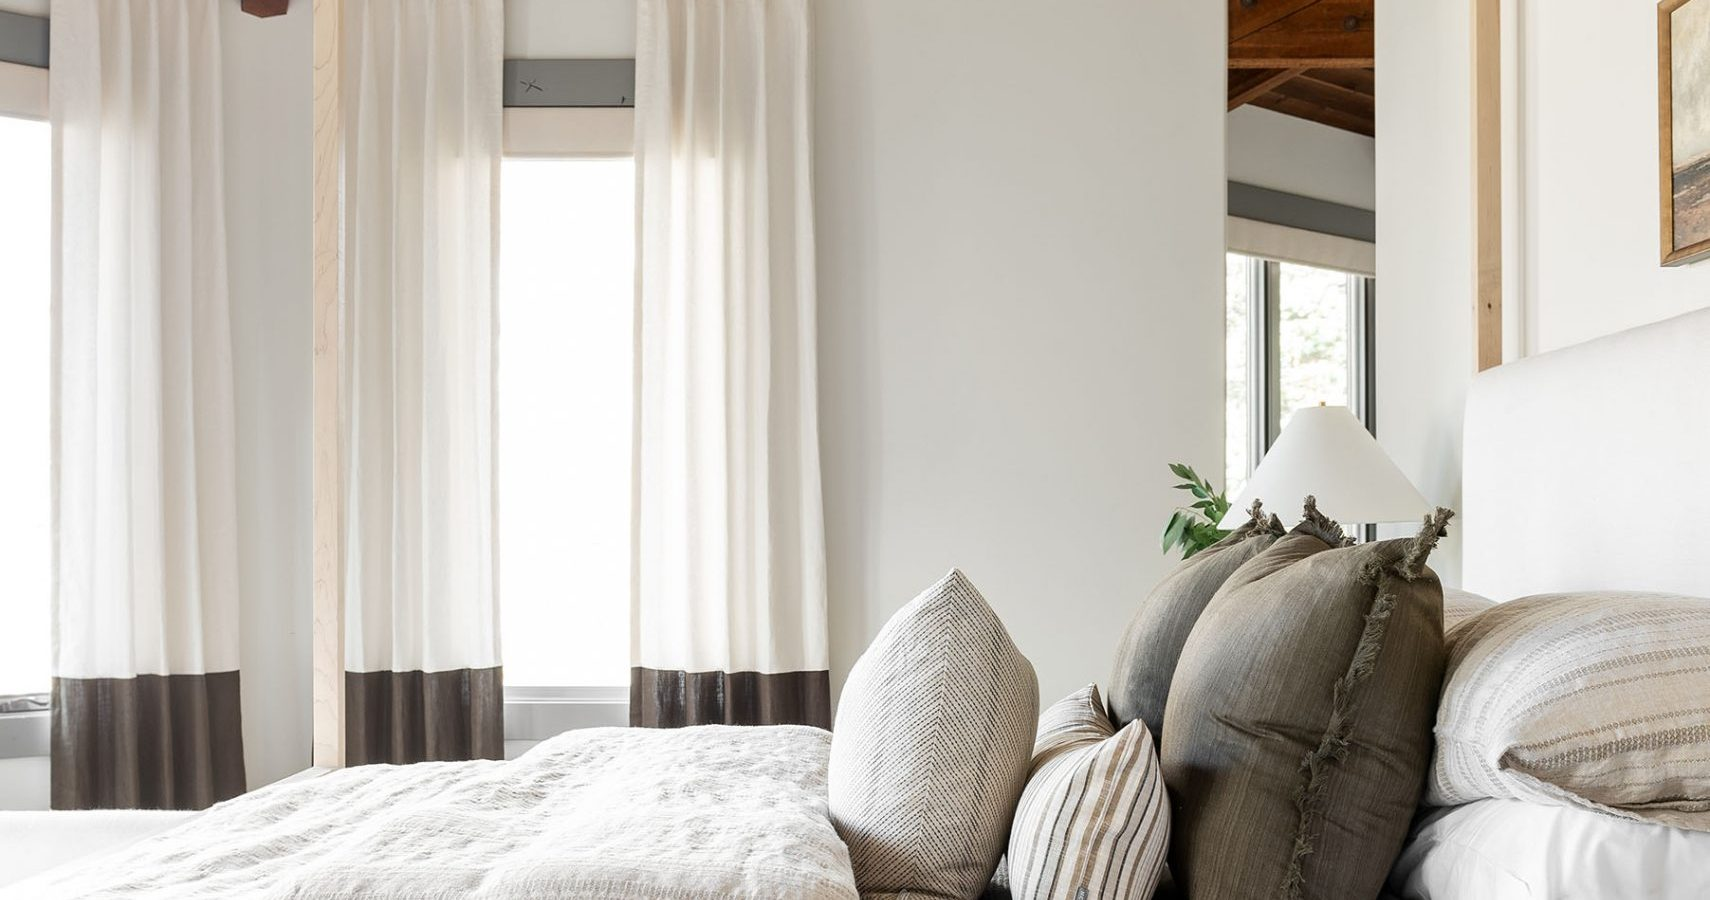 5 Steps for Styling the Bed